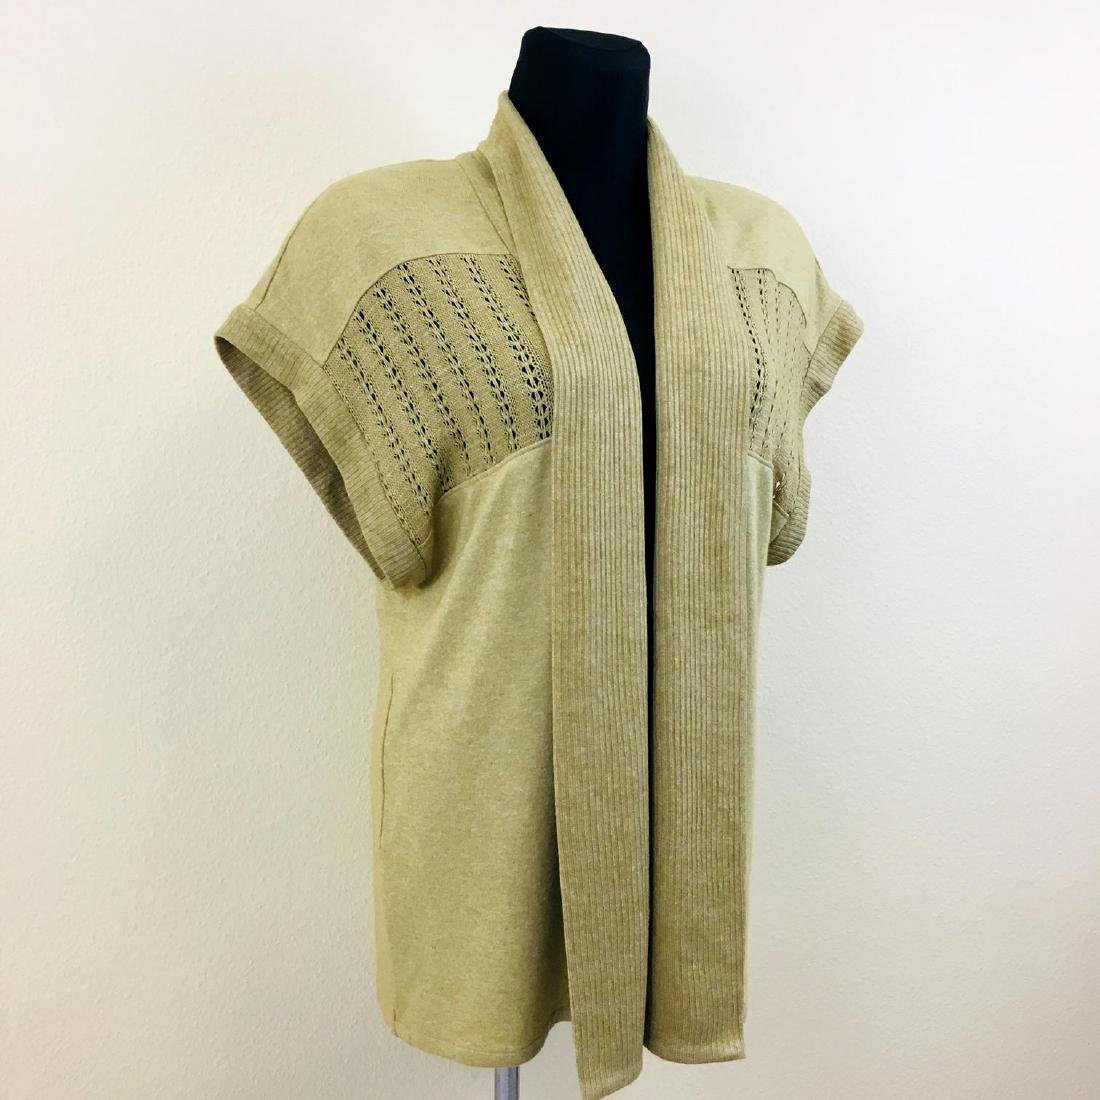 Women's Creation Charmante Wool Blend Cardigan Sweater - 2